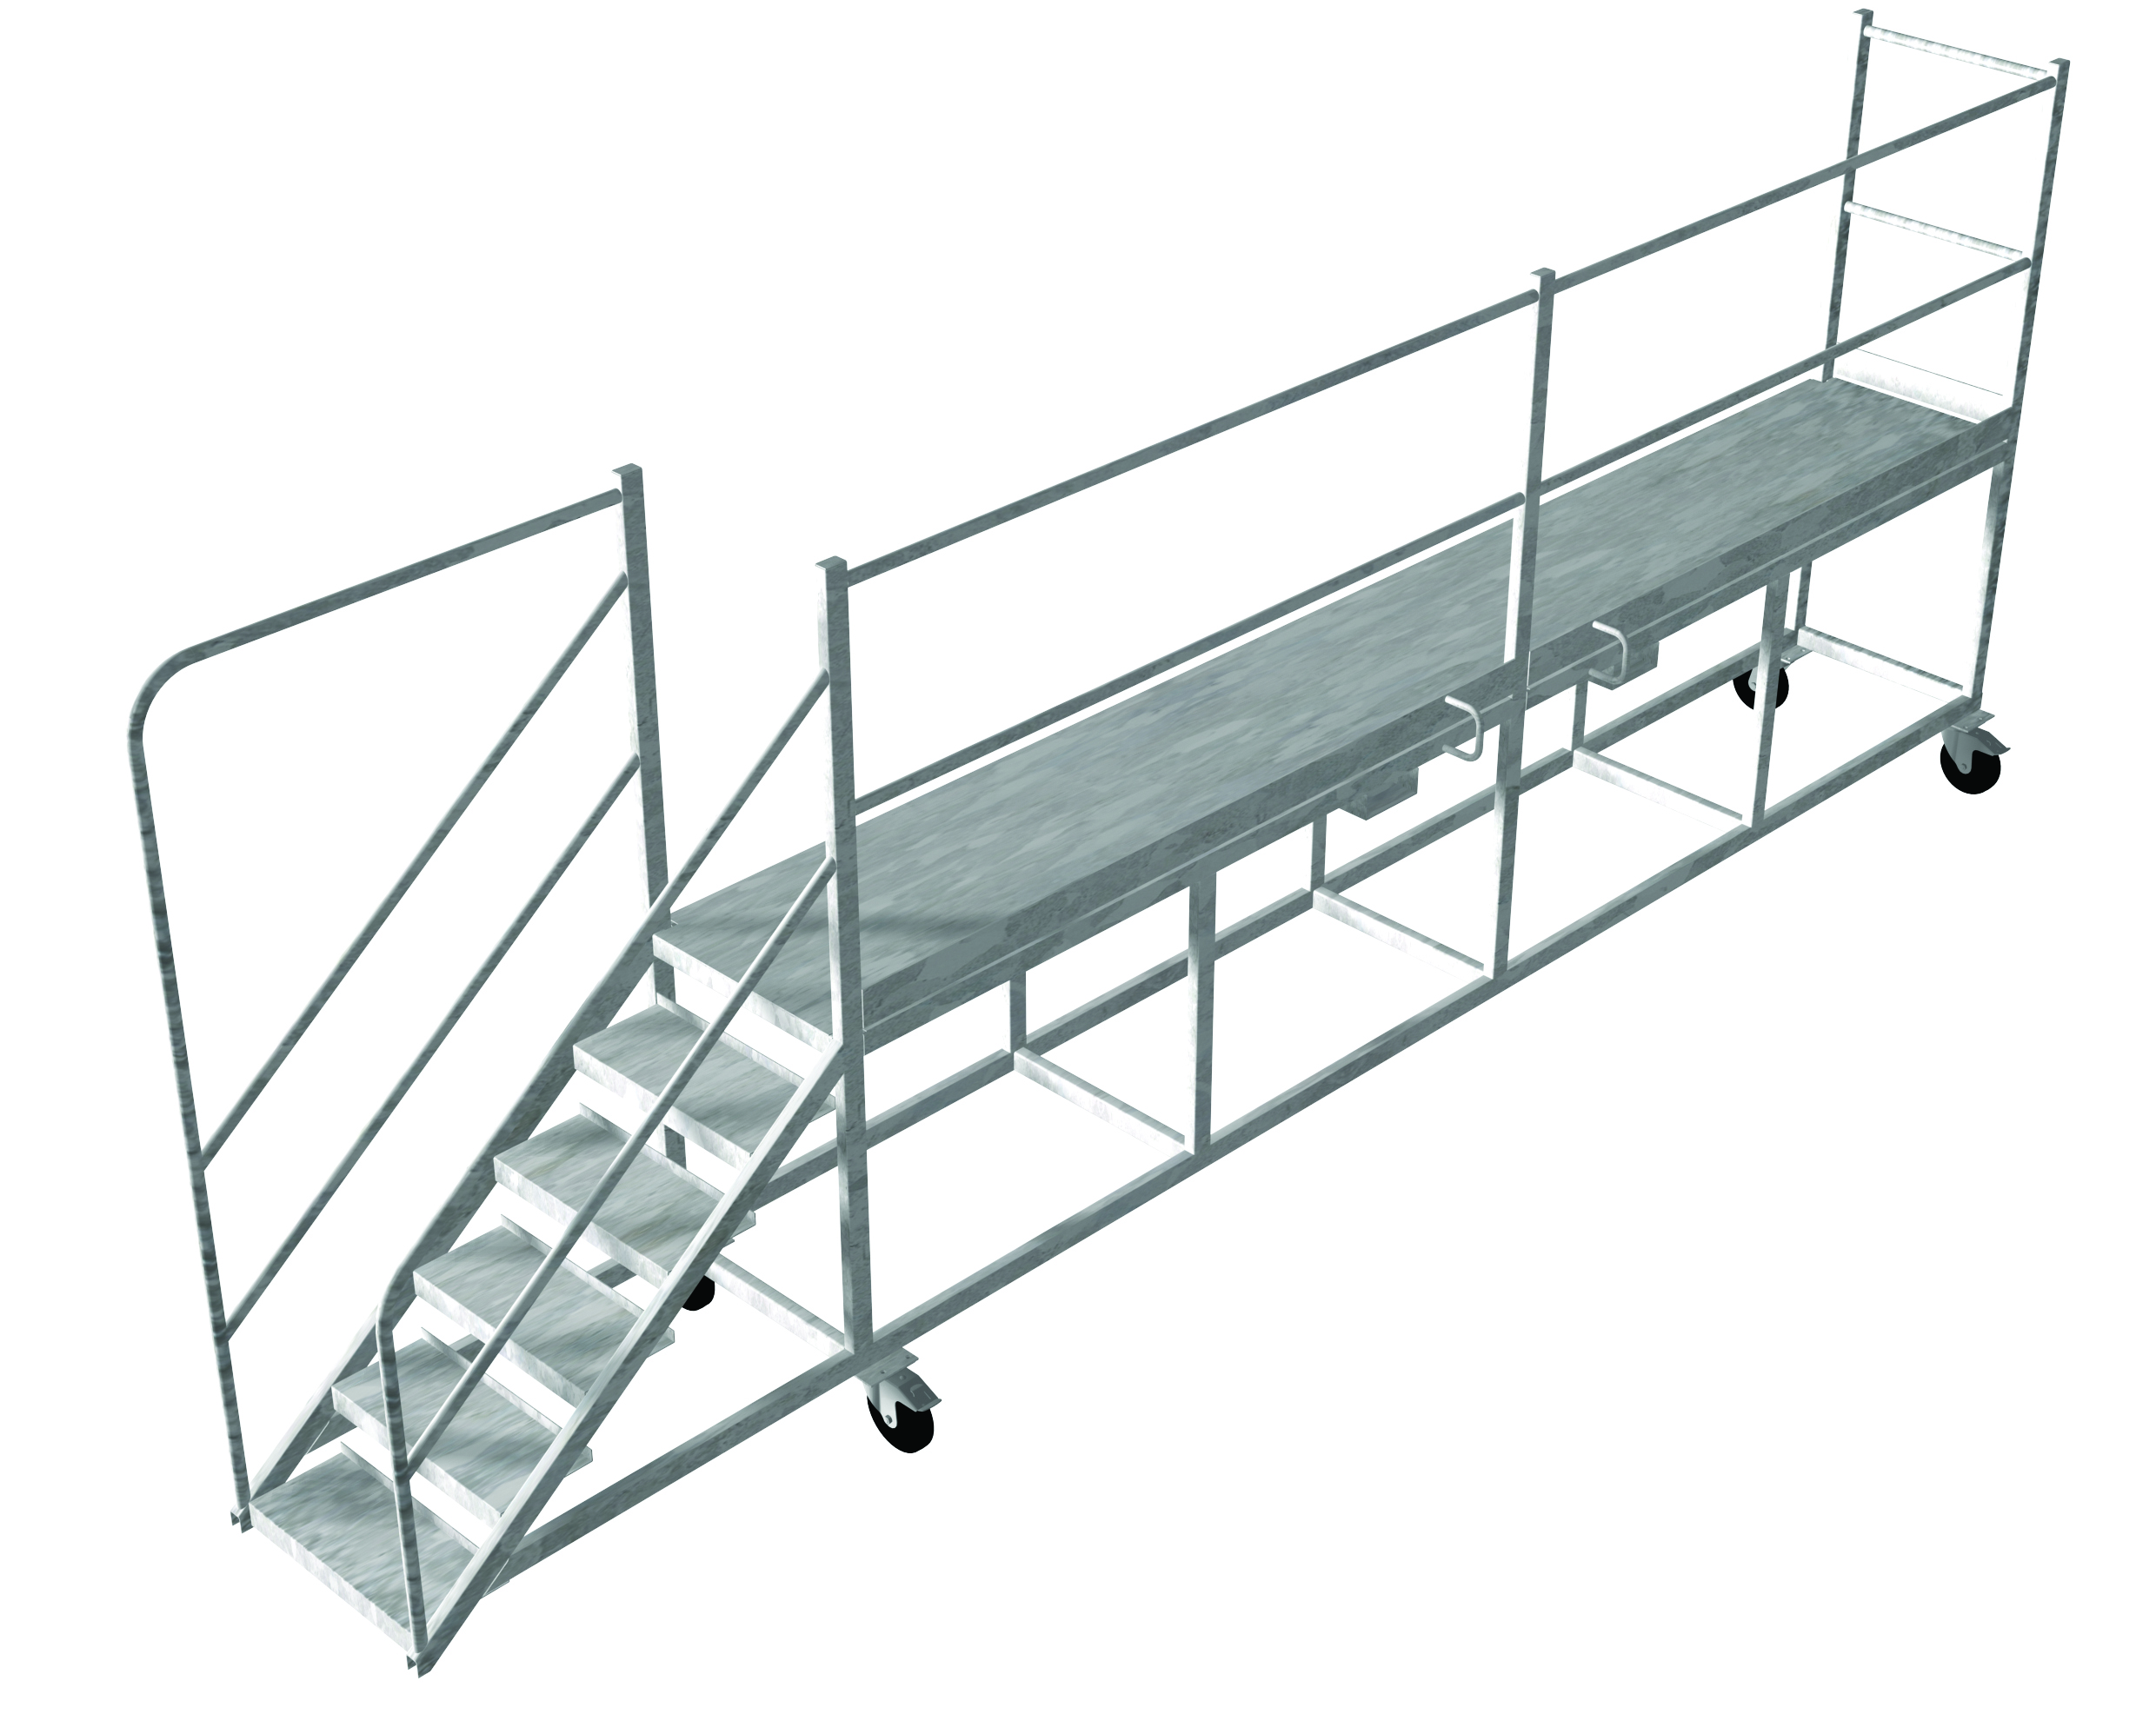 steel-stockists-general-unloading-6m-platform